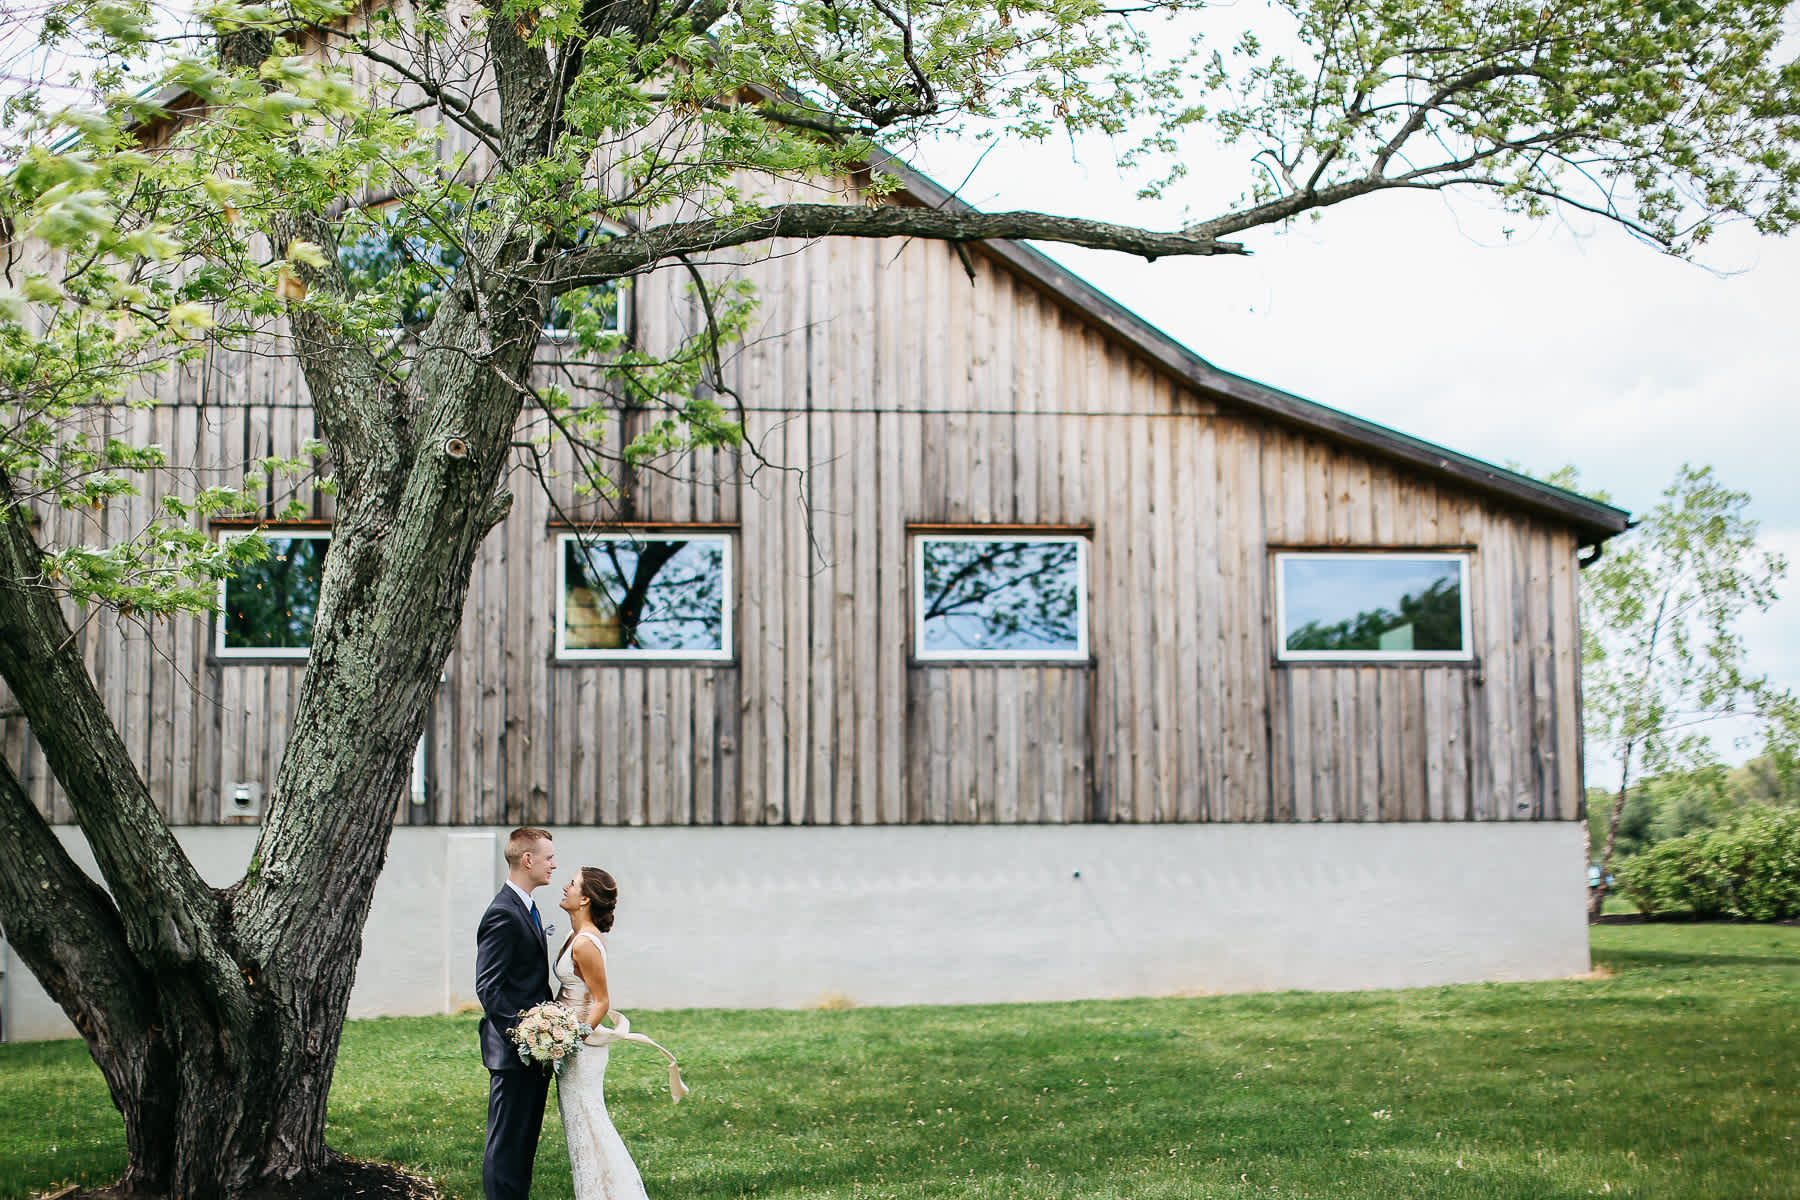 Pennsylvania-Newton-Rosebank-winery-spring-lifestyle-wedding-43